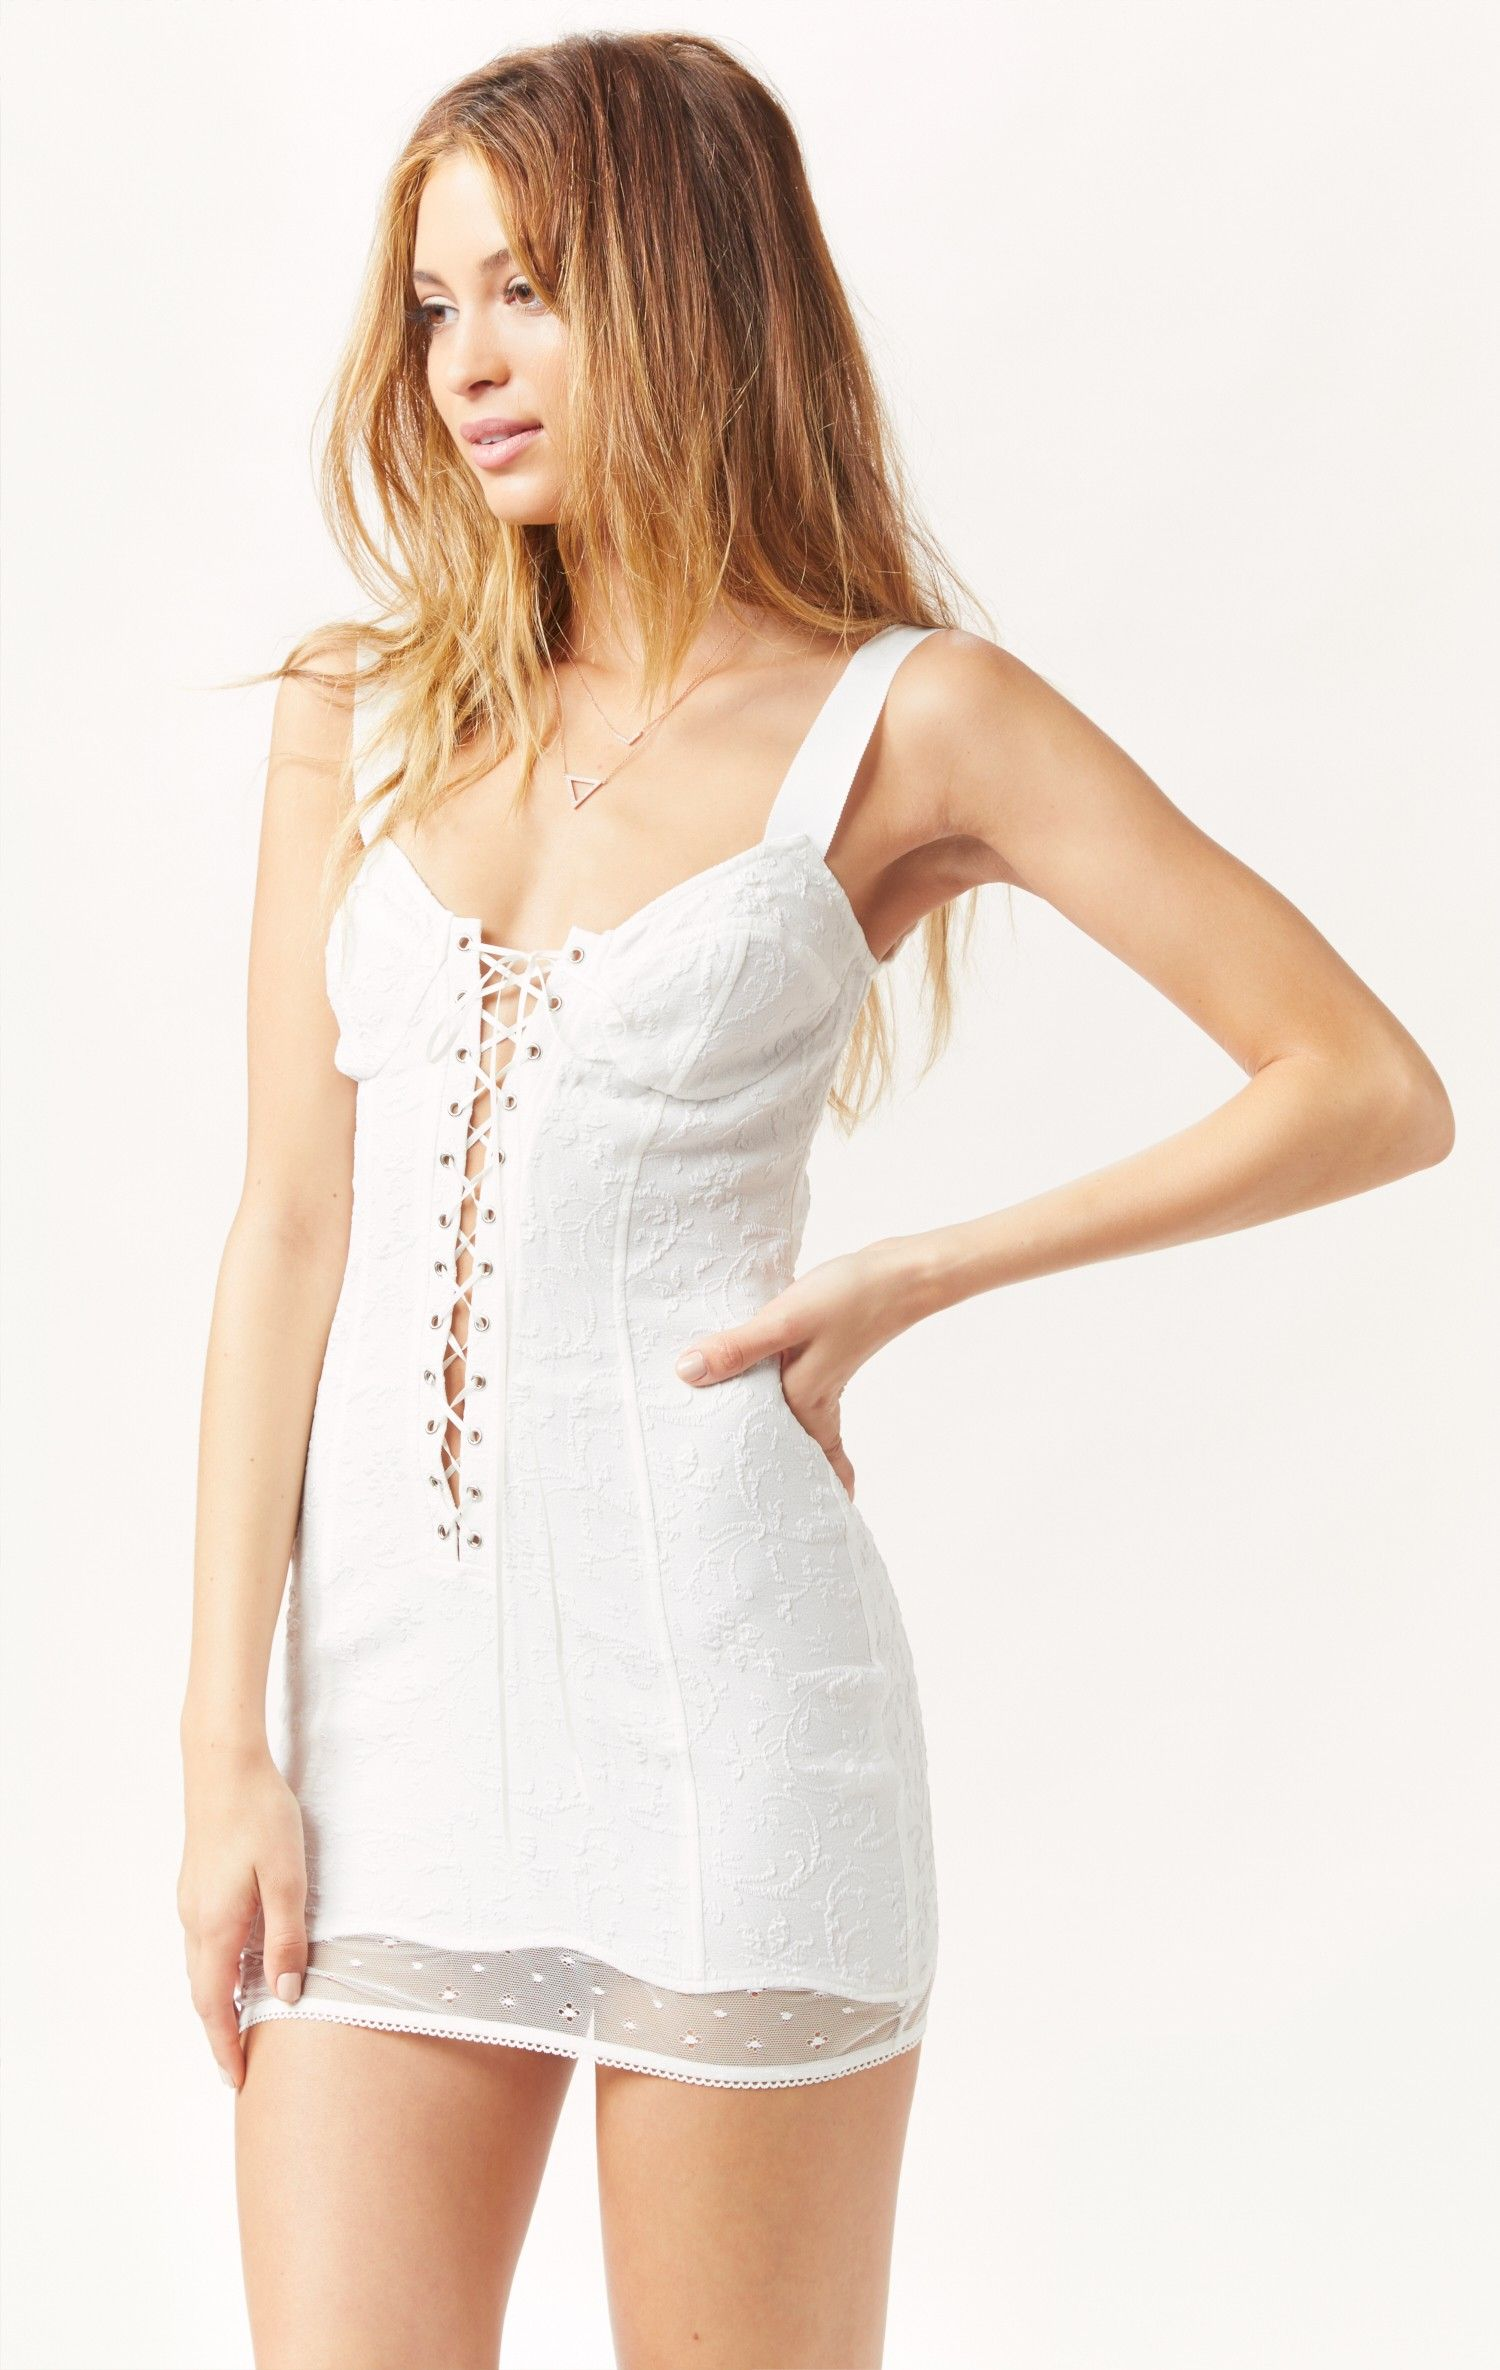 b8f1b86c3c1cc she's a knockout plunging slip dress by FOR LOVE AND LEMONS SKIVVIES  #planetblue